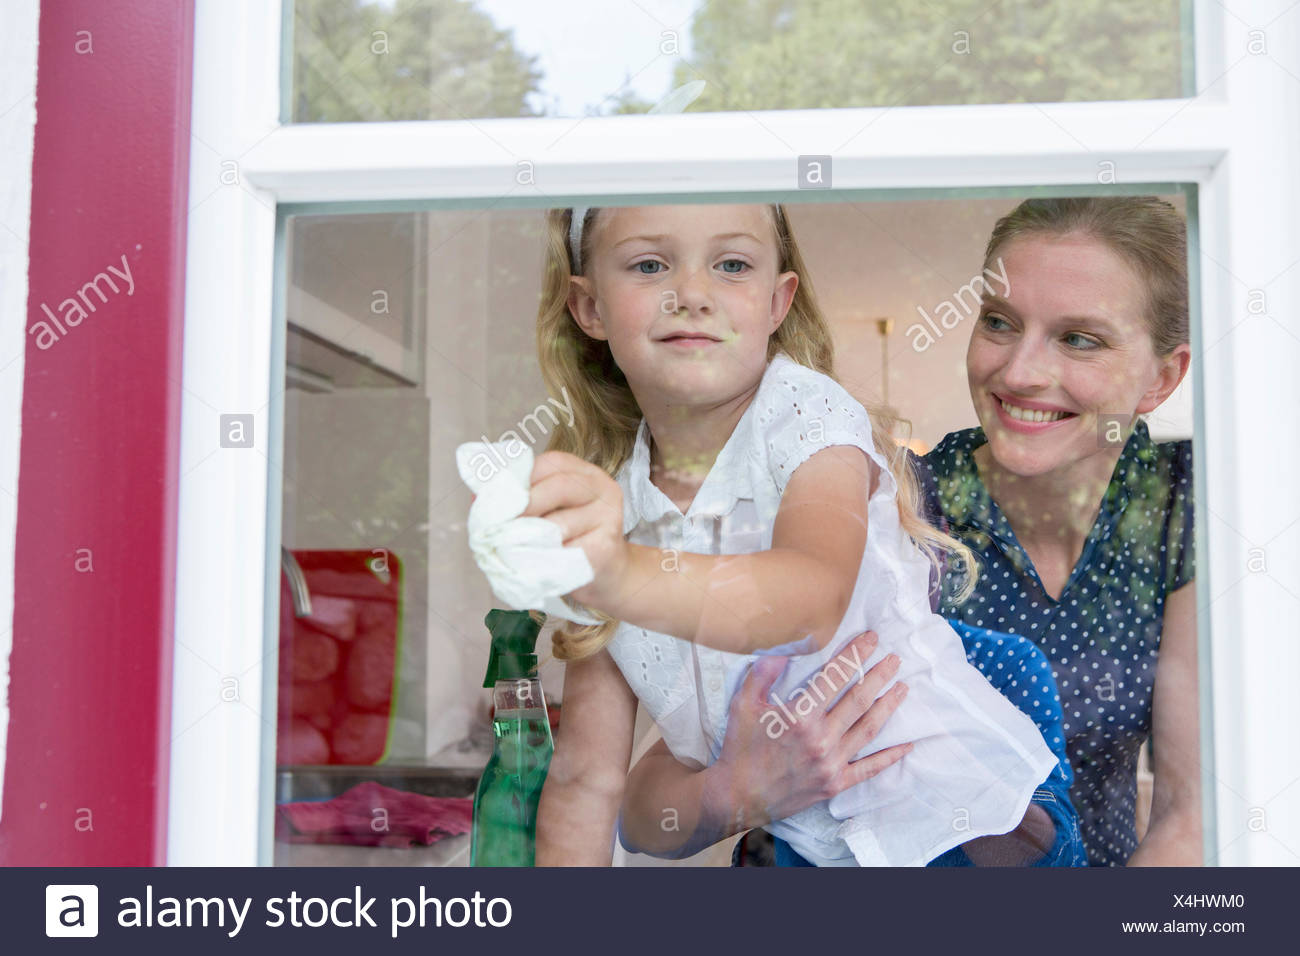 Mother and daughter cleaning window - Stock Image